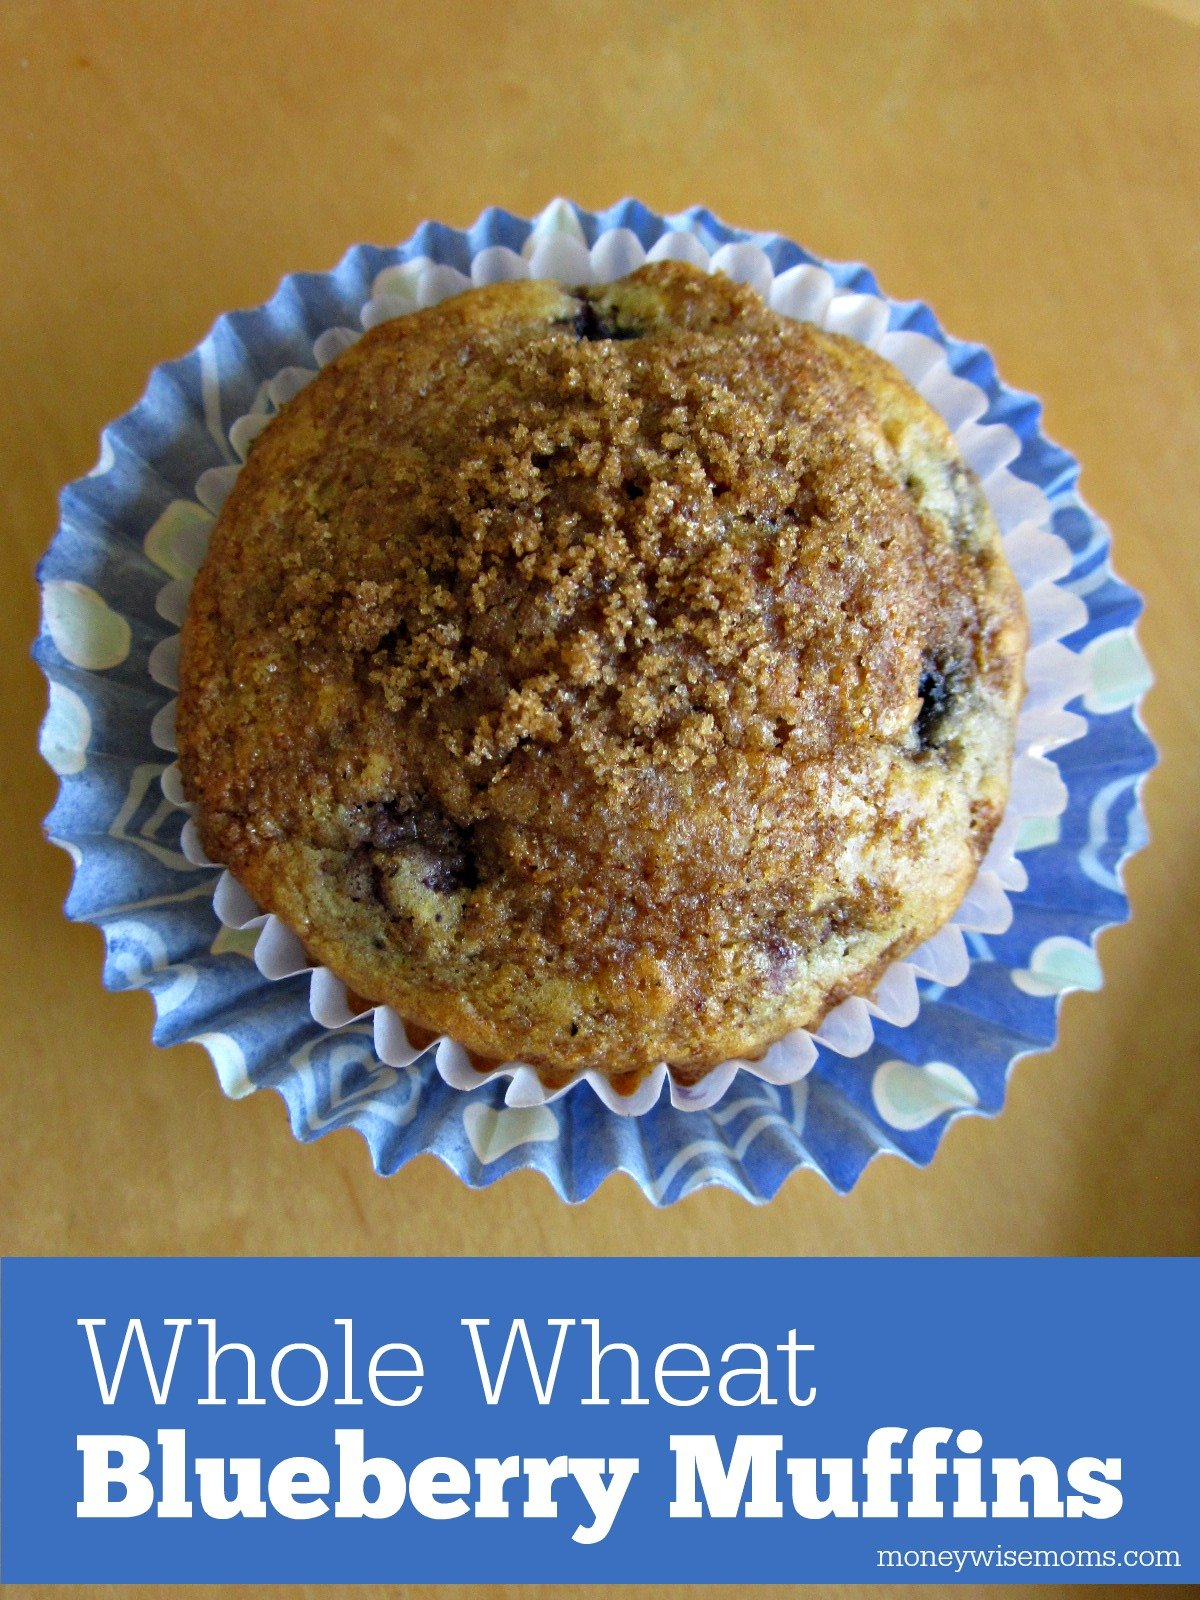 Whole Wheat Blueberry Muffins Recipes — Dishmaps